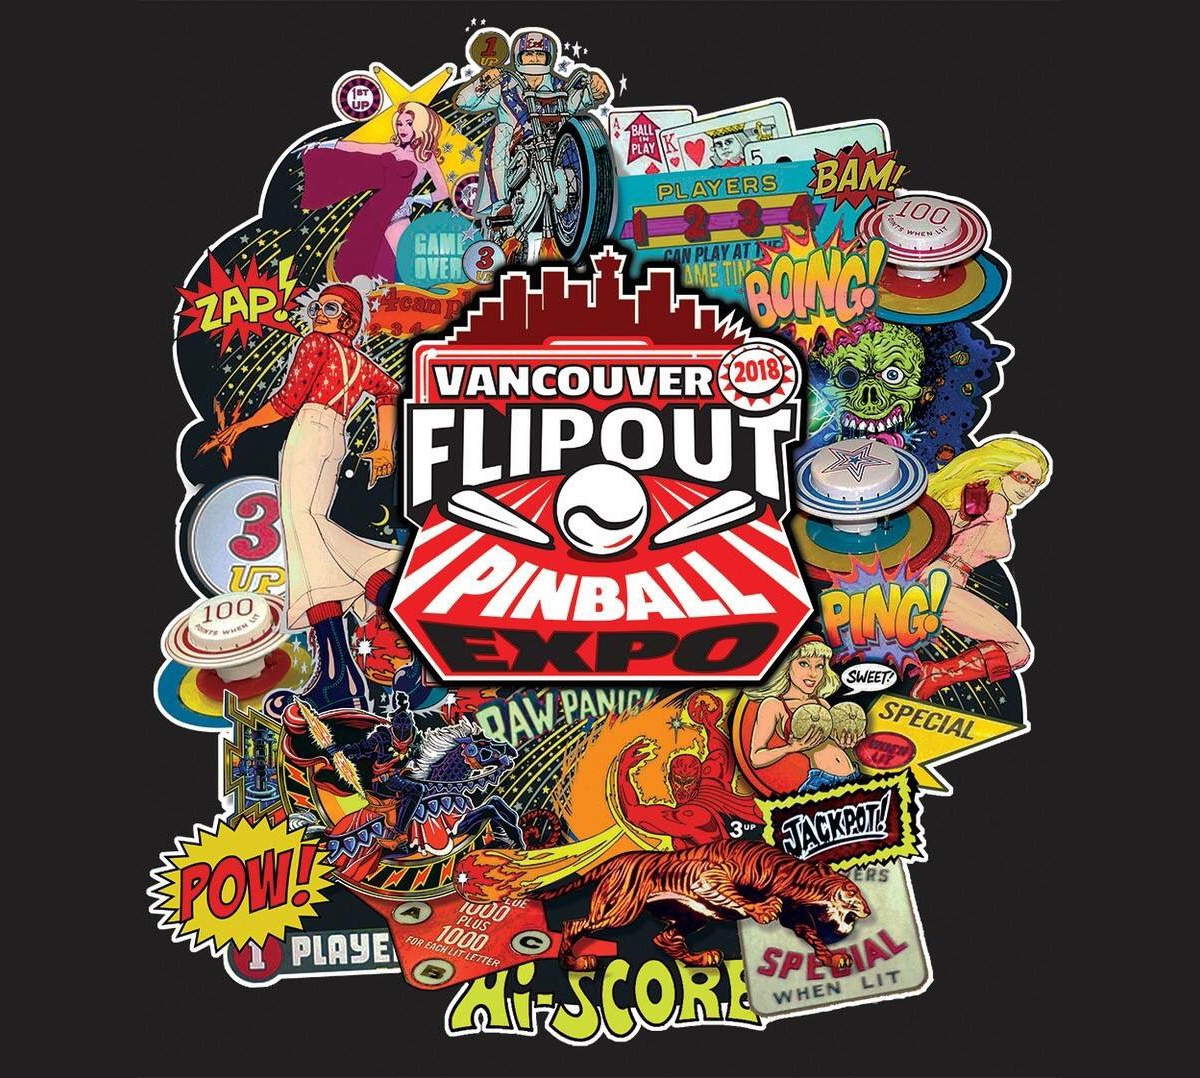 See Houdini in Action at Vancouver FlipOut: Sep 7-9